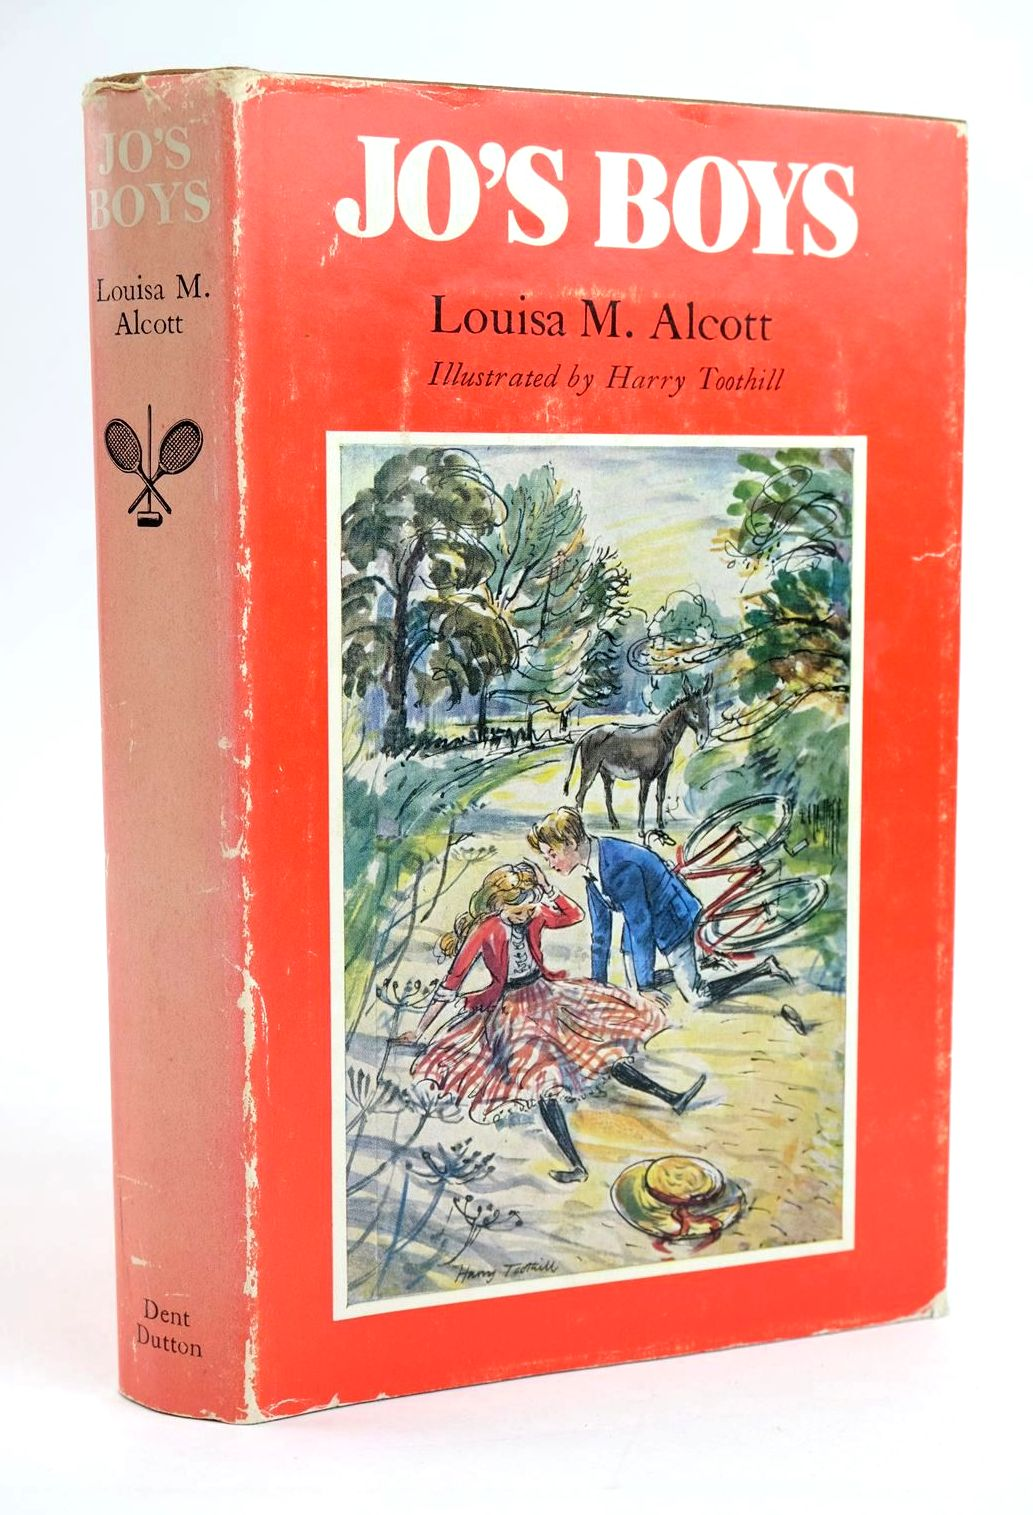 Photo of JO'S BOYS written by Alcott, Louisa M. illustrated by Toothill, Harry published by J.M. Dent & Sons Ltd., E.P. Dutton & Co. Inc. (STOCK CODE: 1319219)  for sale by Stella & Rose's Books